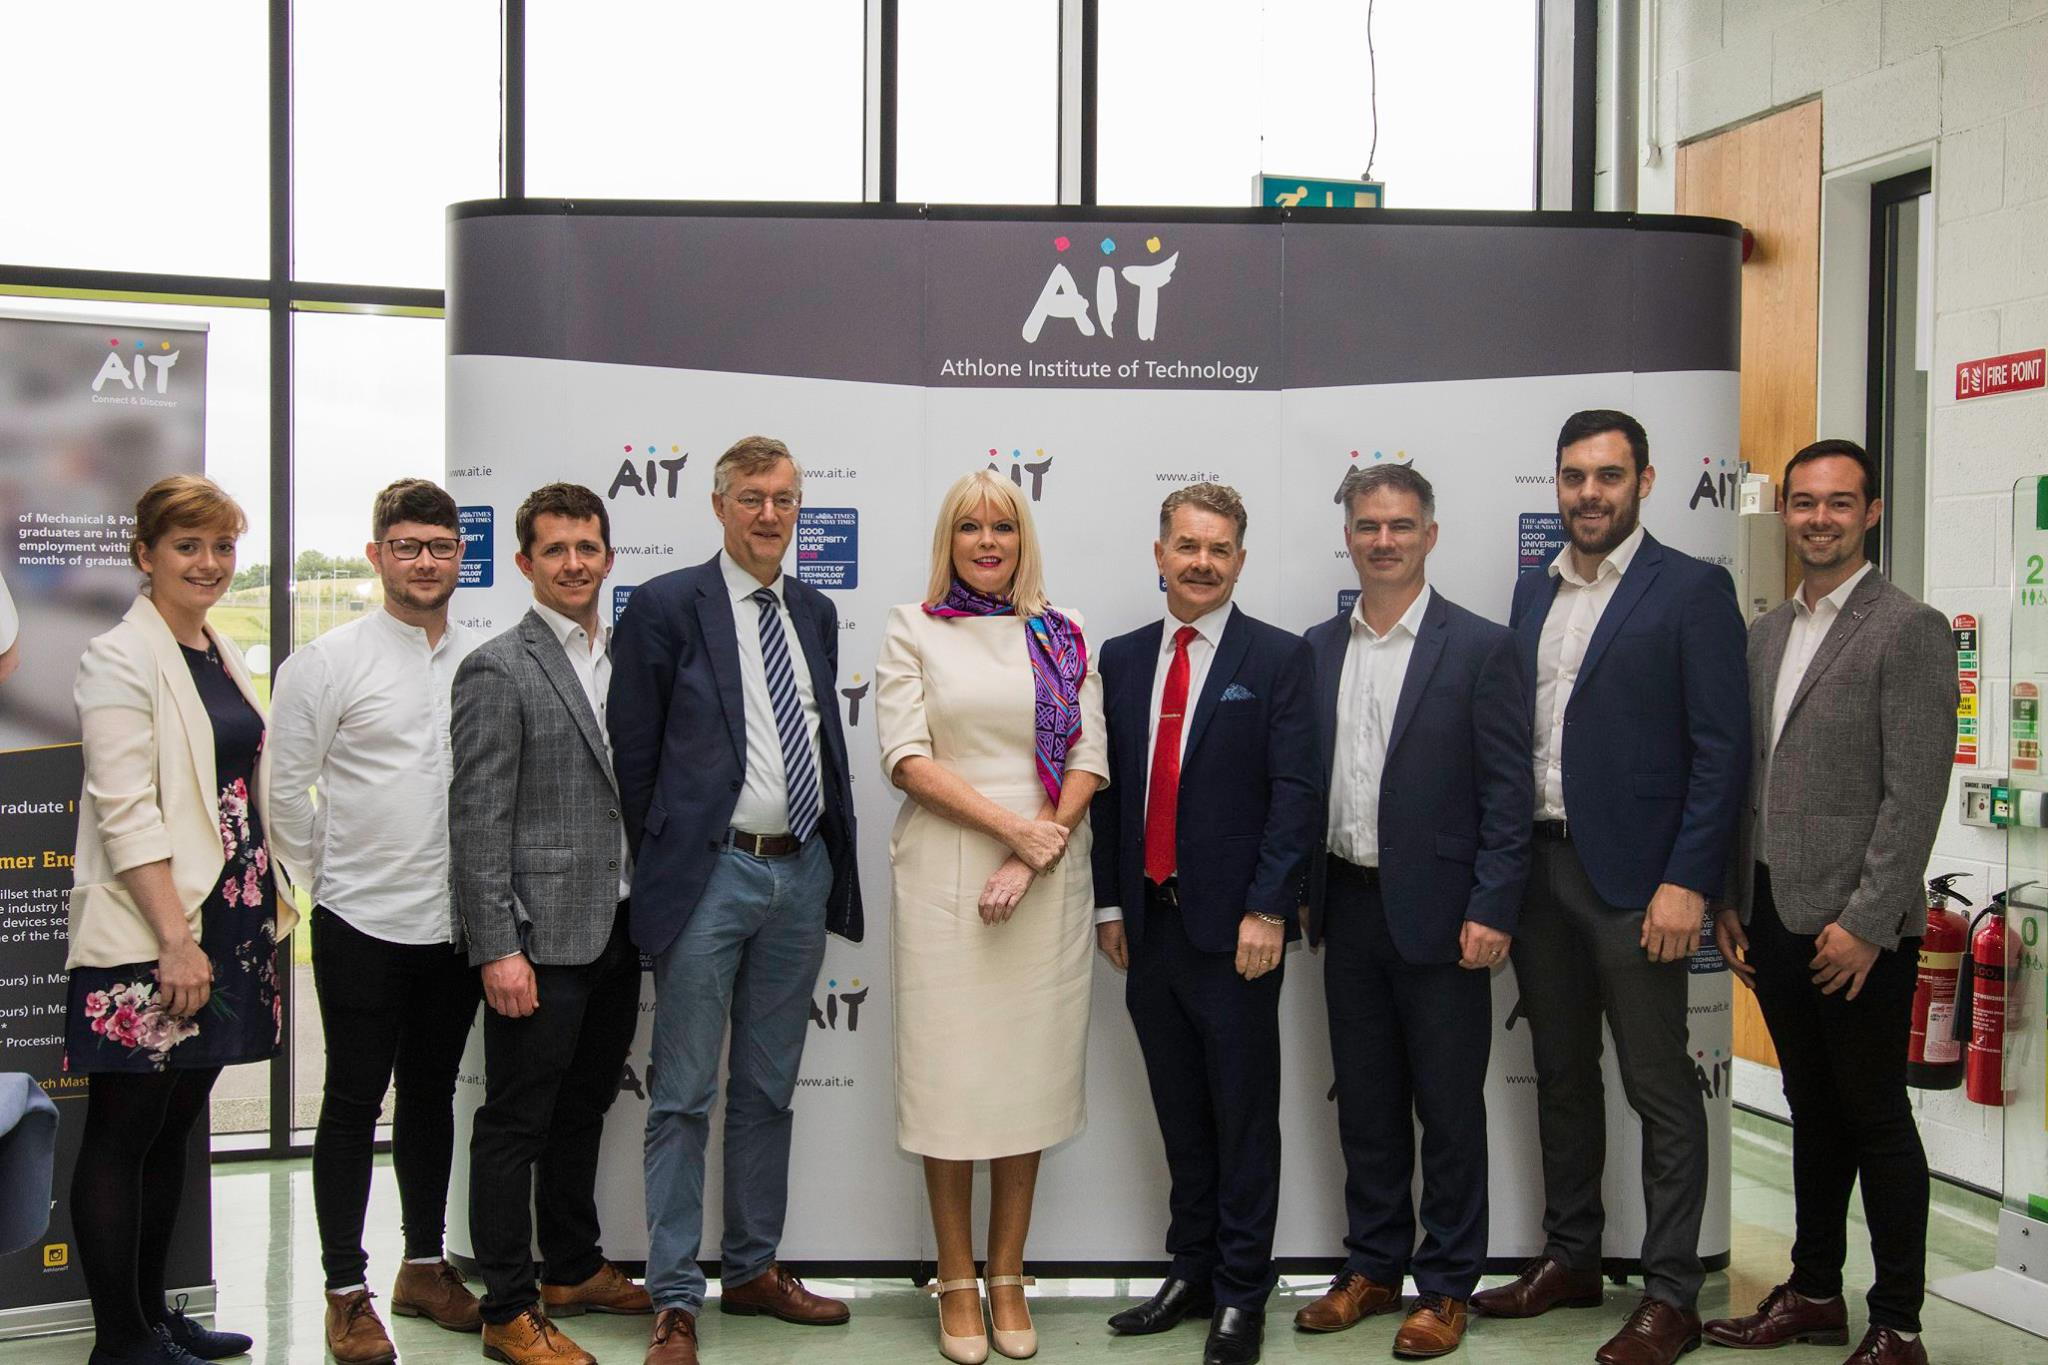 Pictured: Clodagh Reid PhD Student at AIT, Tomás Hyland PhD University of Limerick, Dr Ronan Dunbar Engineering Lecturer, Prof. Marc J. de Vries Founder of PATT, Minister of State for Higher EducationMary Mitchell O'Connor, Prof. Ciarán Ó Catháin President of AIT, Dr. Niall Seery Vice-President Academic & Registrar, Joe Phelan PhD Student UL, Jeffery Buckley PhD Student at KTH Royal Institute of Technology in Stockholm.